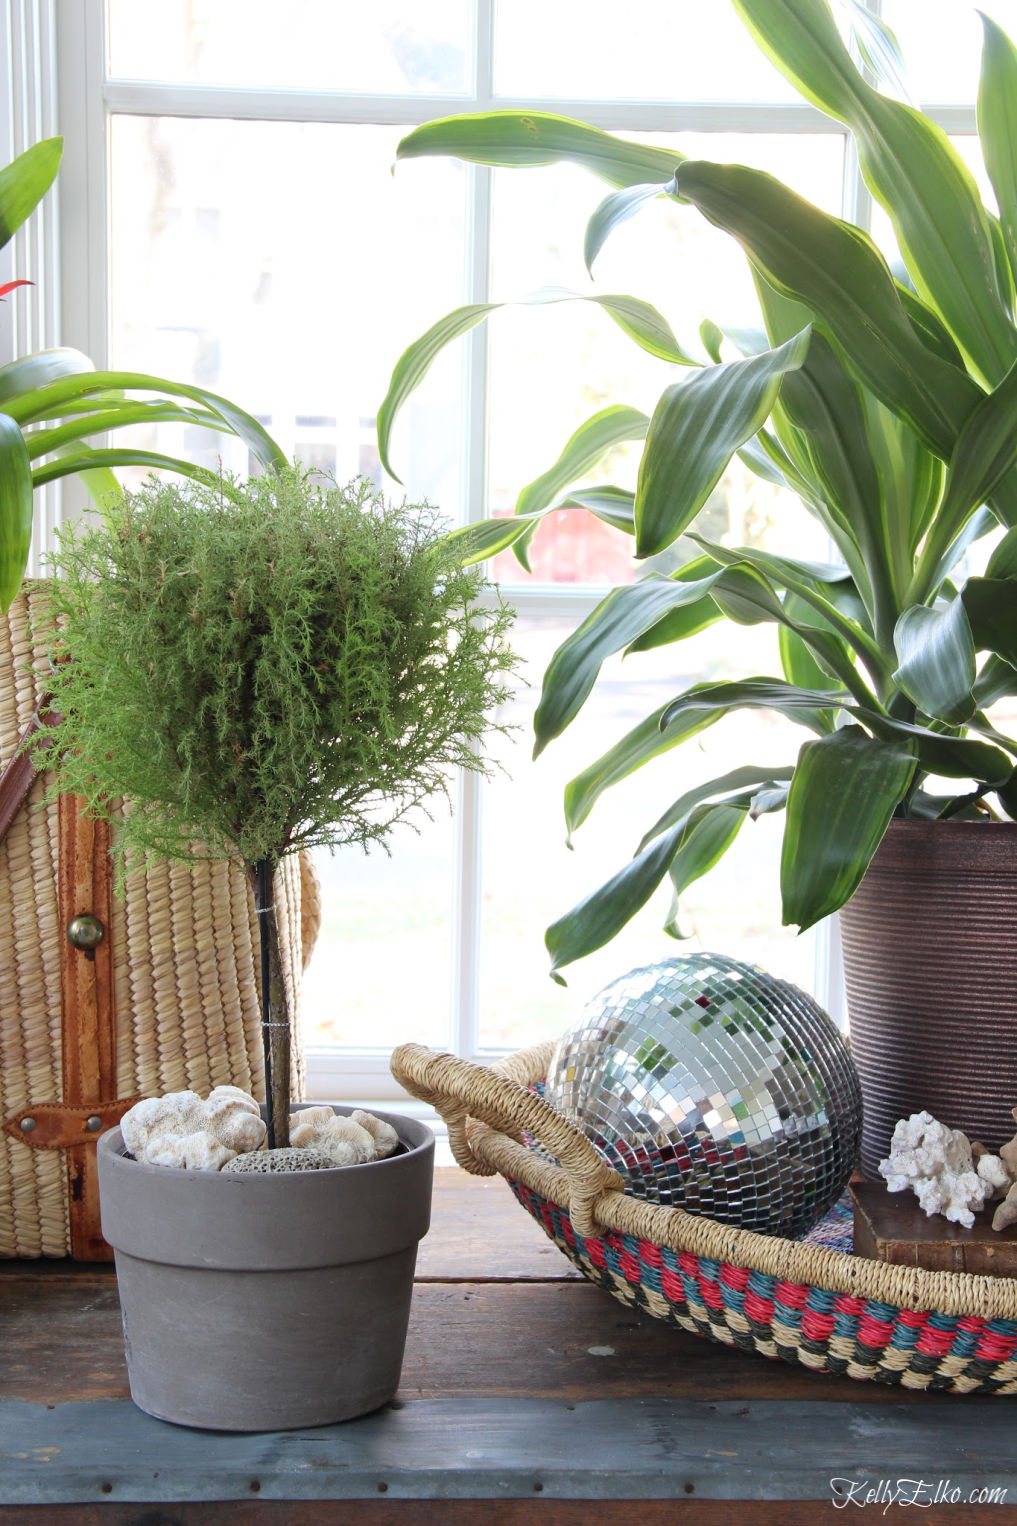 Beautiful houseplant display including a lemon cypress kellyelko.com #plants #houseplants #sunroom #jungalow #jungalowstyle #bohostyle #bohodecor #interiordesign #planters #vintagedecor #plantlady #eclecticdecor #kellyelko #lemoncypress #topiary #discoball